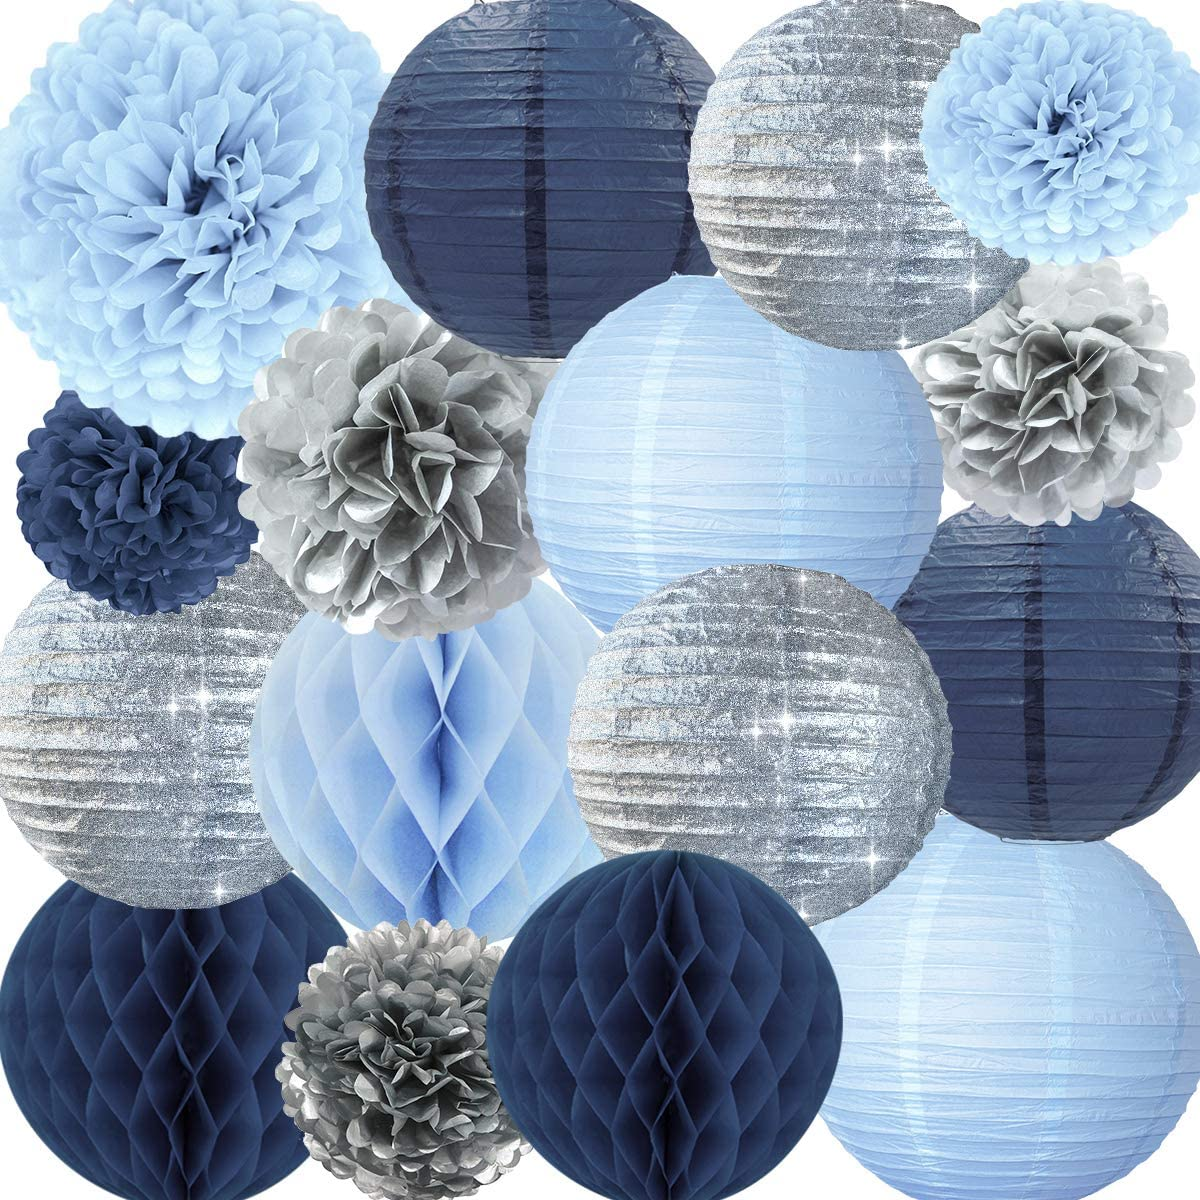 NICROLANDEE Frozen Theme Winter Wonderland Party Decoration - 16 Pcs Silver Glitter Paper Lanterns Honeycomb Balls Tissue Pom Poms for Kids Birthday Party Supplies Bridal Shower Wedding Decor